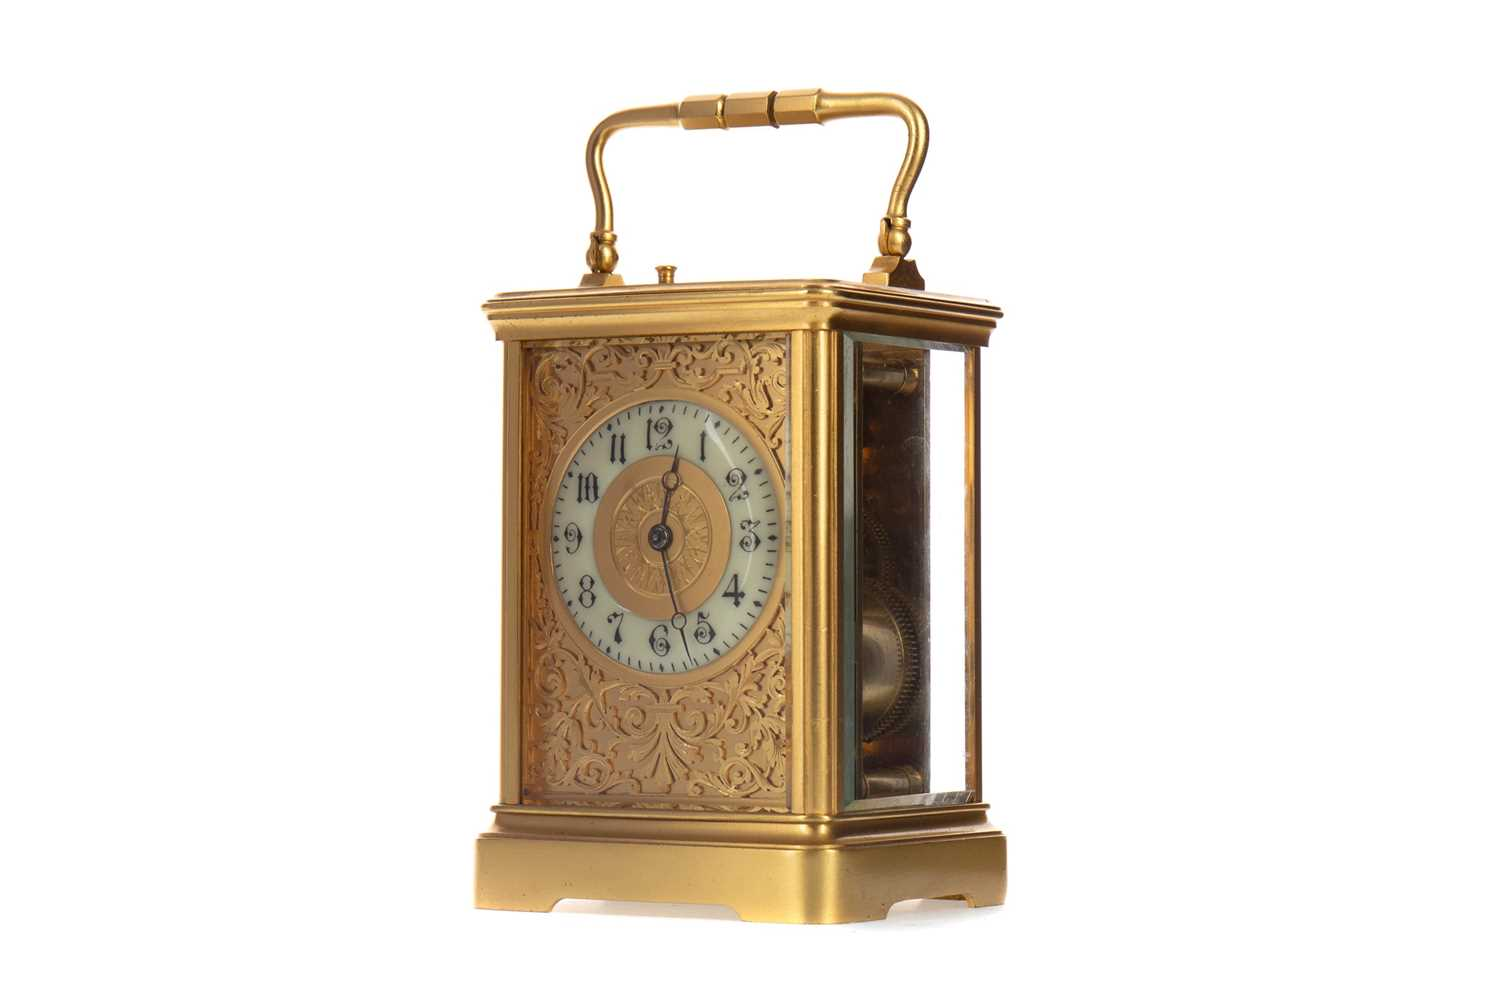 Lot A 19TH CENTURY BRASS CASED REPEATING CARRIAGE CLOCK BY GUY, LAMAILLE & CO